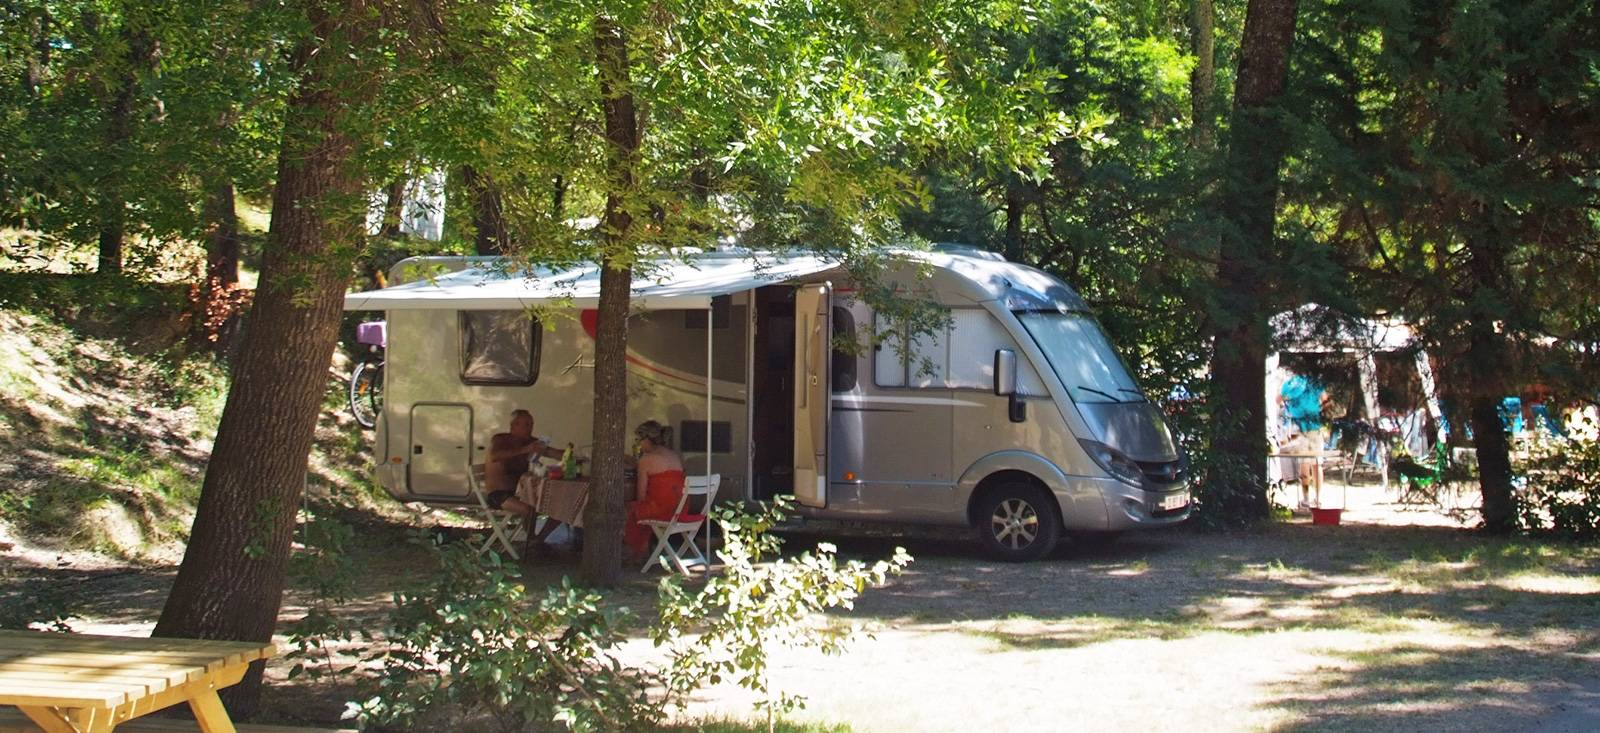 camping car emplacements domaine de gaujac